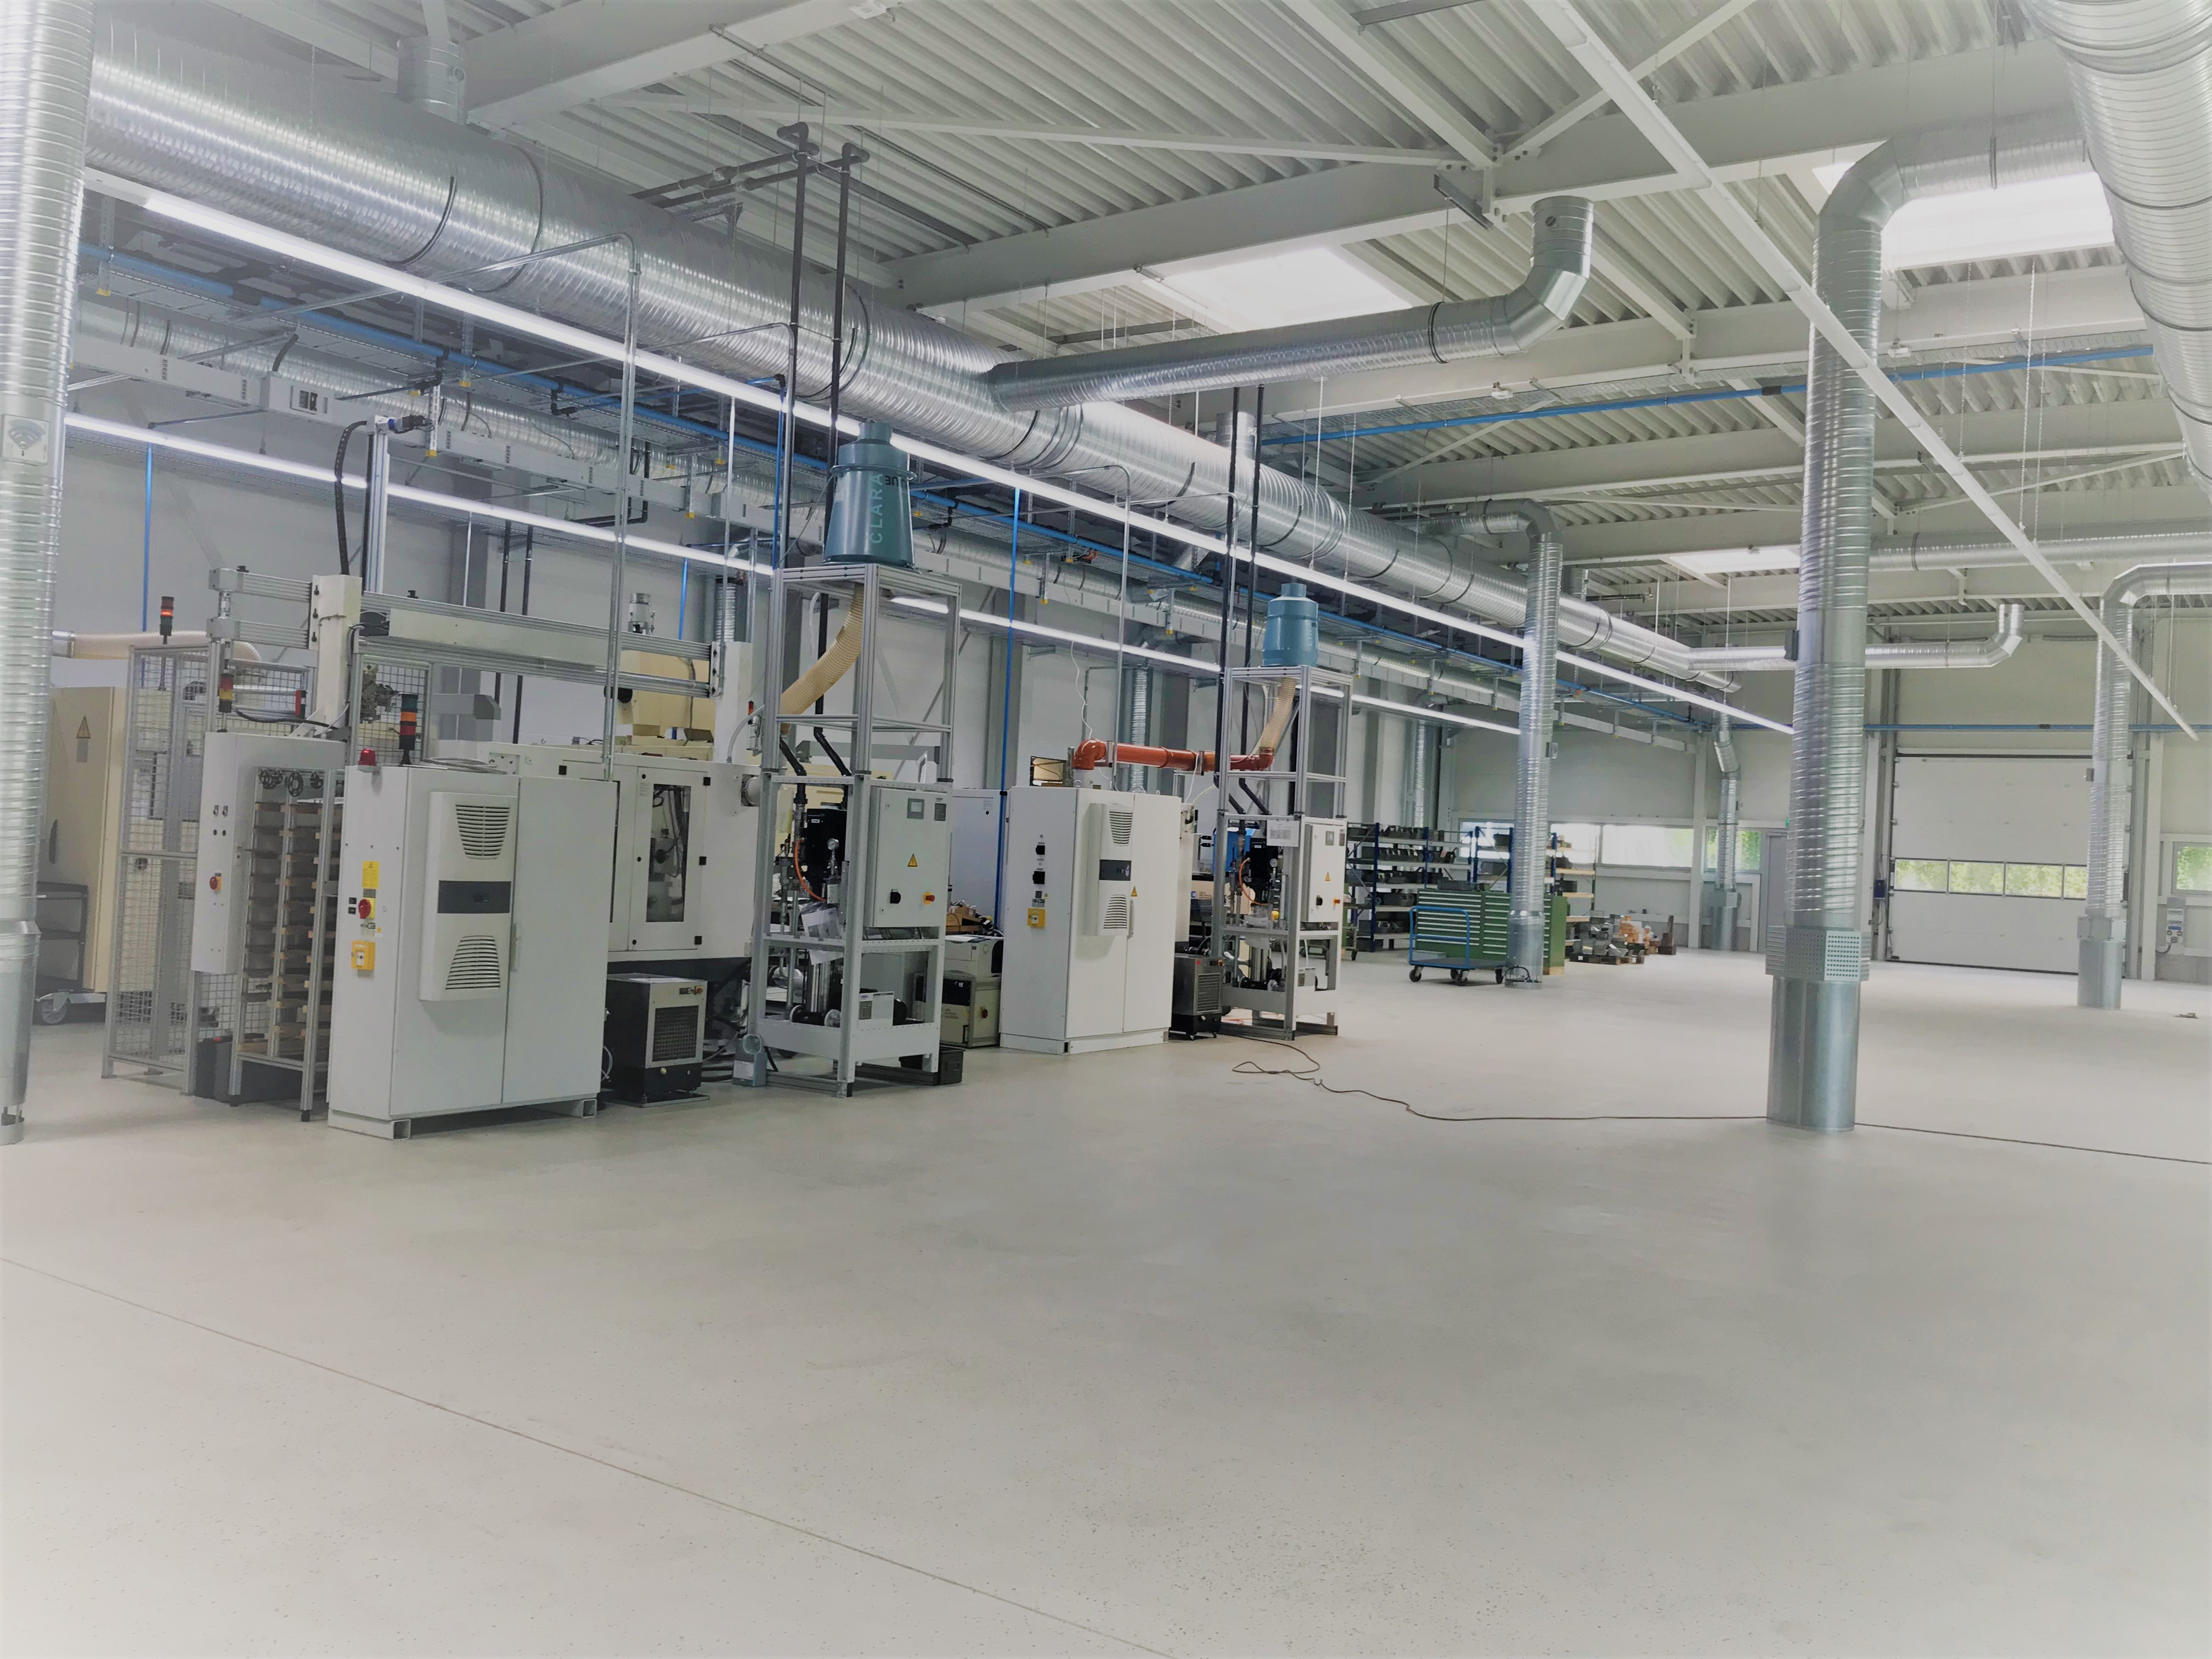 JBO moved the first 5 machines into the new production hall 3